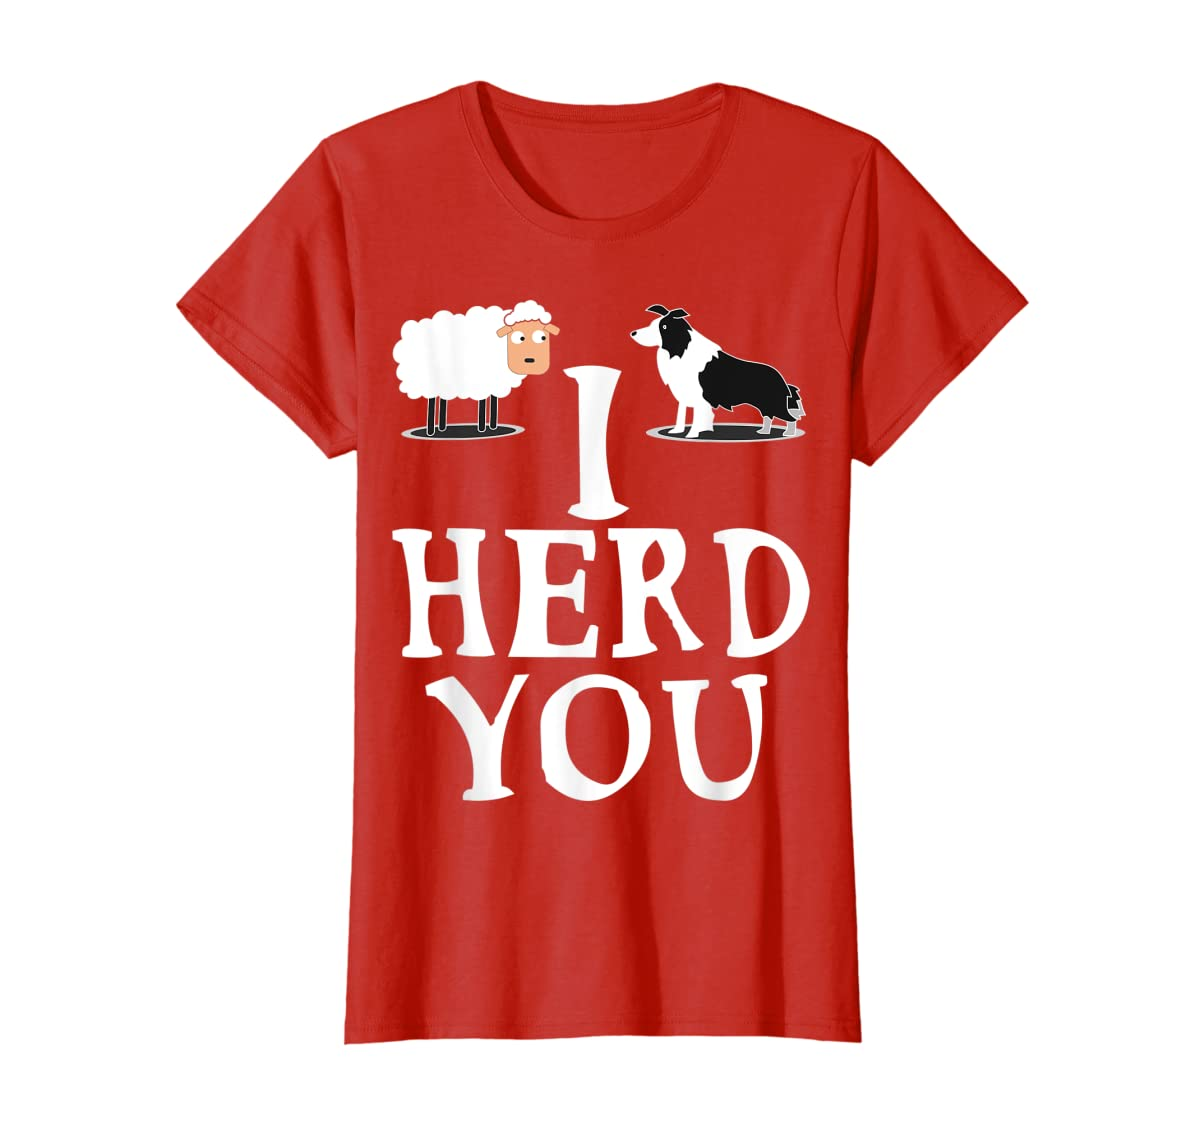 I HERD YOU BORDER COLLIE T shirt Gifts for Men Women Kids-Women's T-Shirt-Red